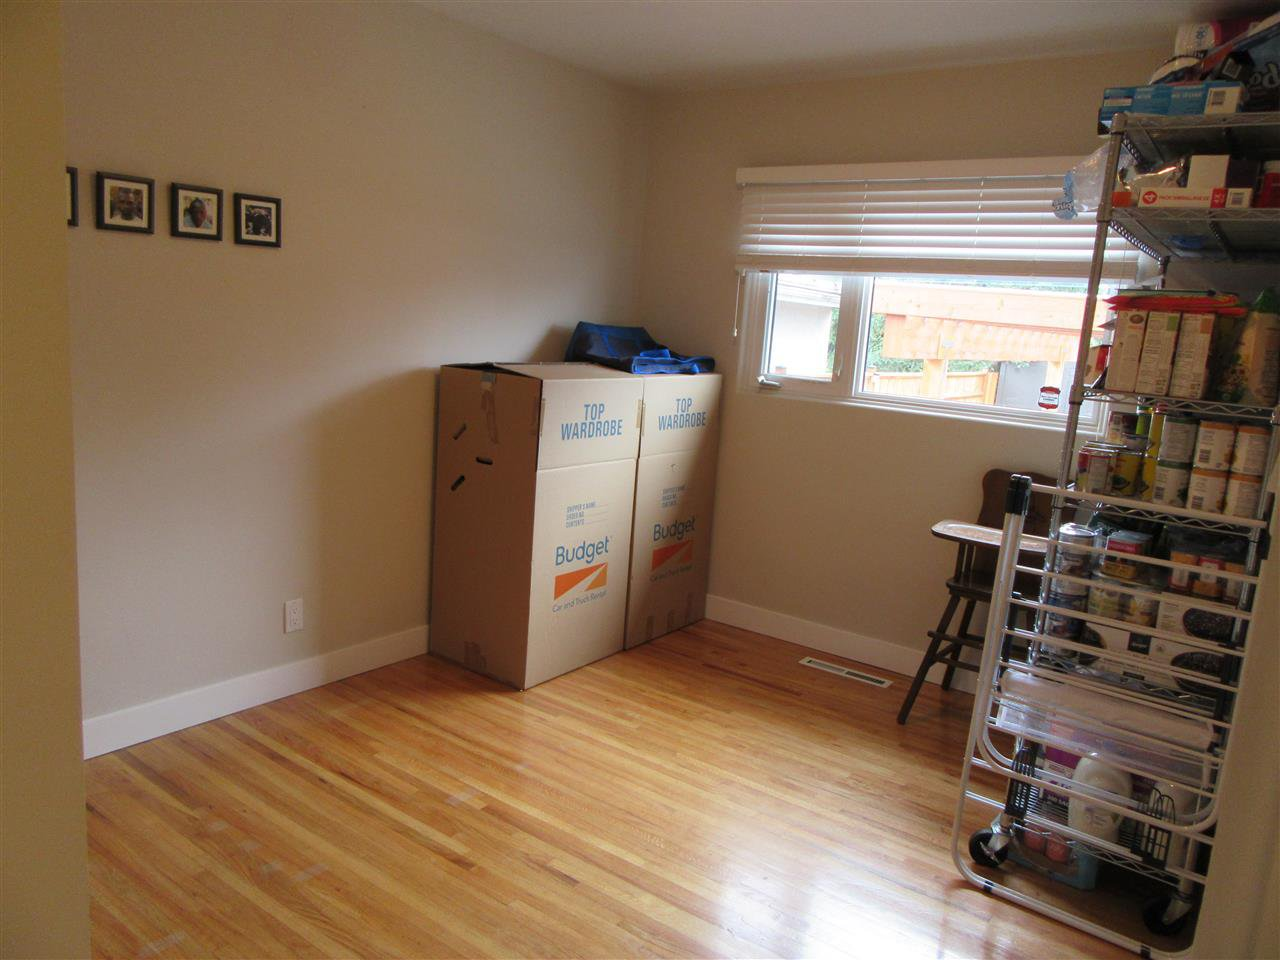 """Photo 34: Photos: 121 FREEMAN Street in Prince George: Nechako View House for sale in """"NECHAKO"""" (PG City Central (Zone 72))  : MLS®# R2493268"""